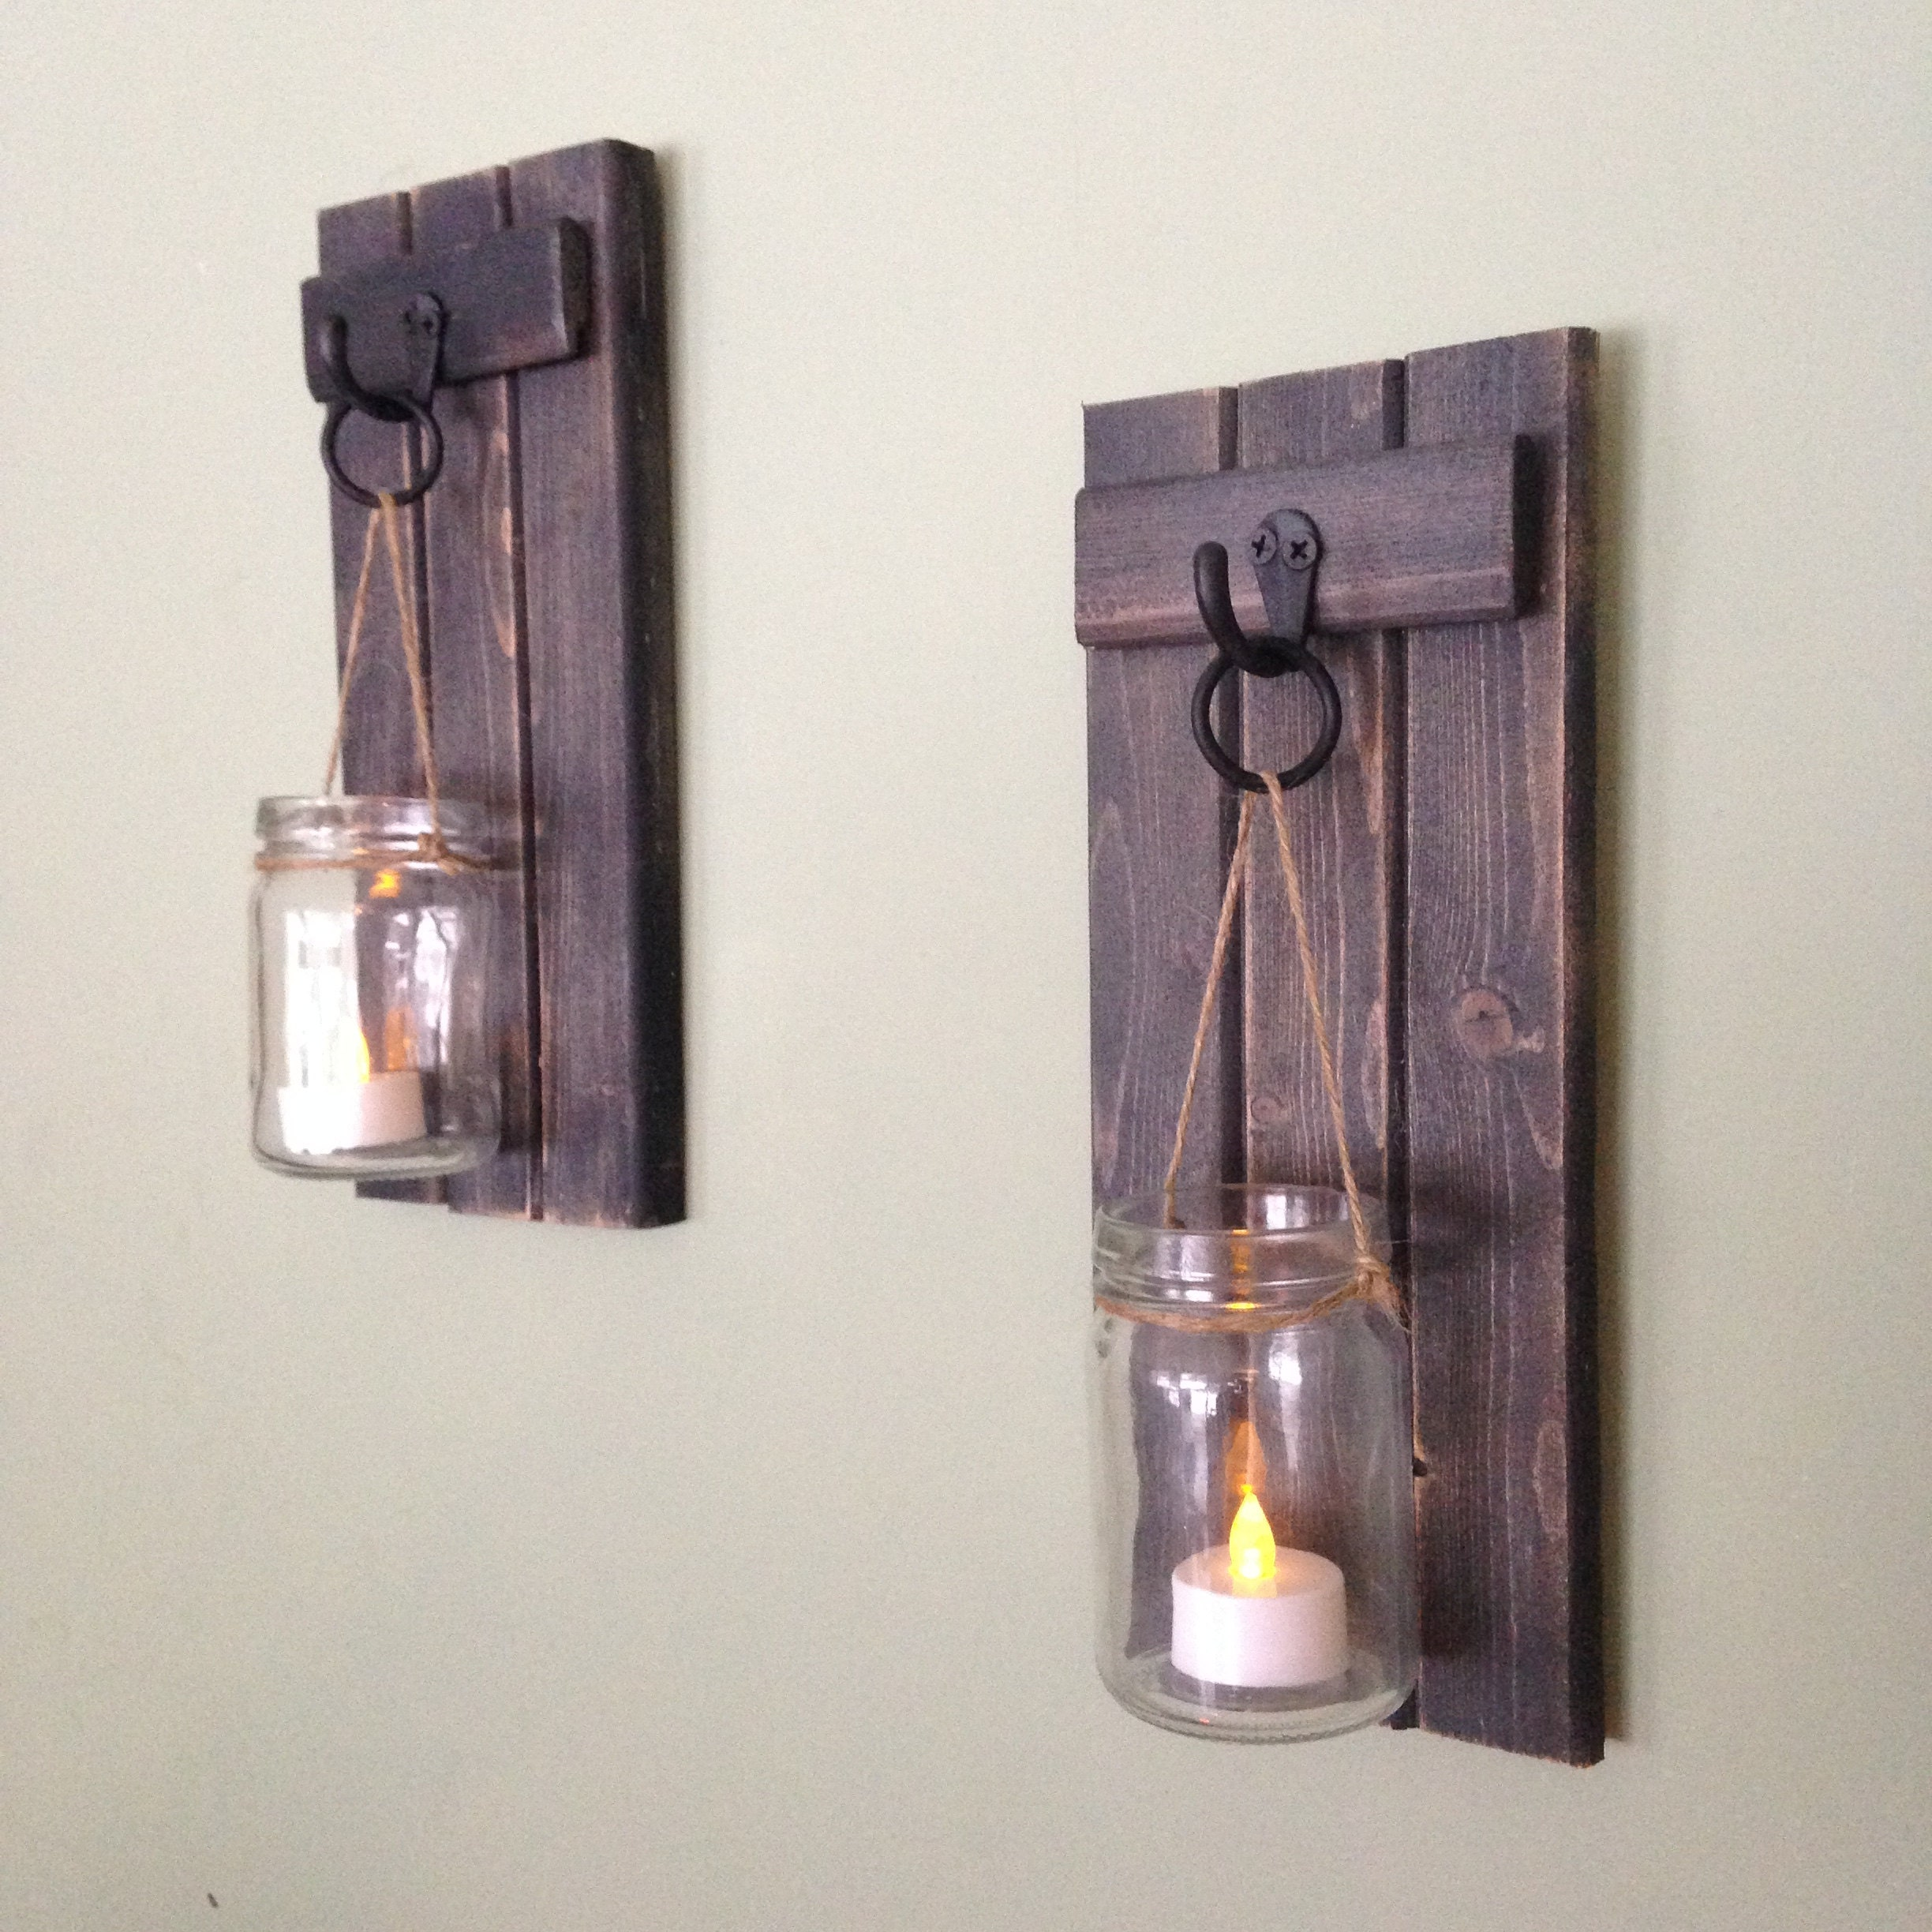 Cove Decor by CoveDecor on Etsy